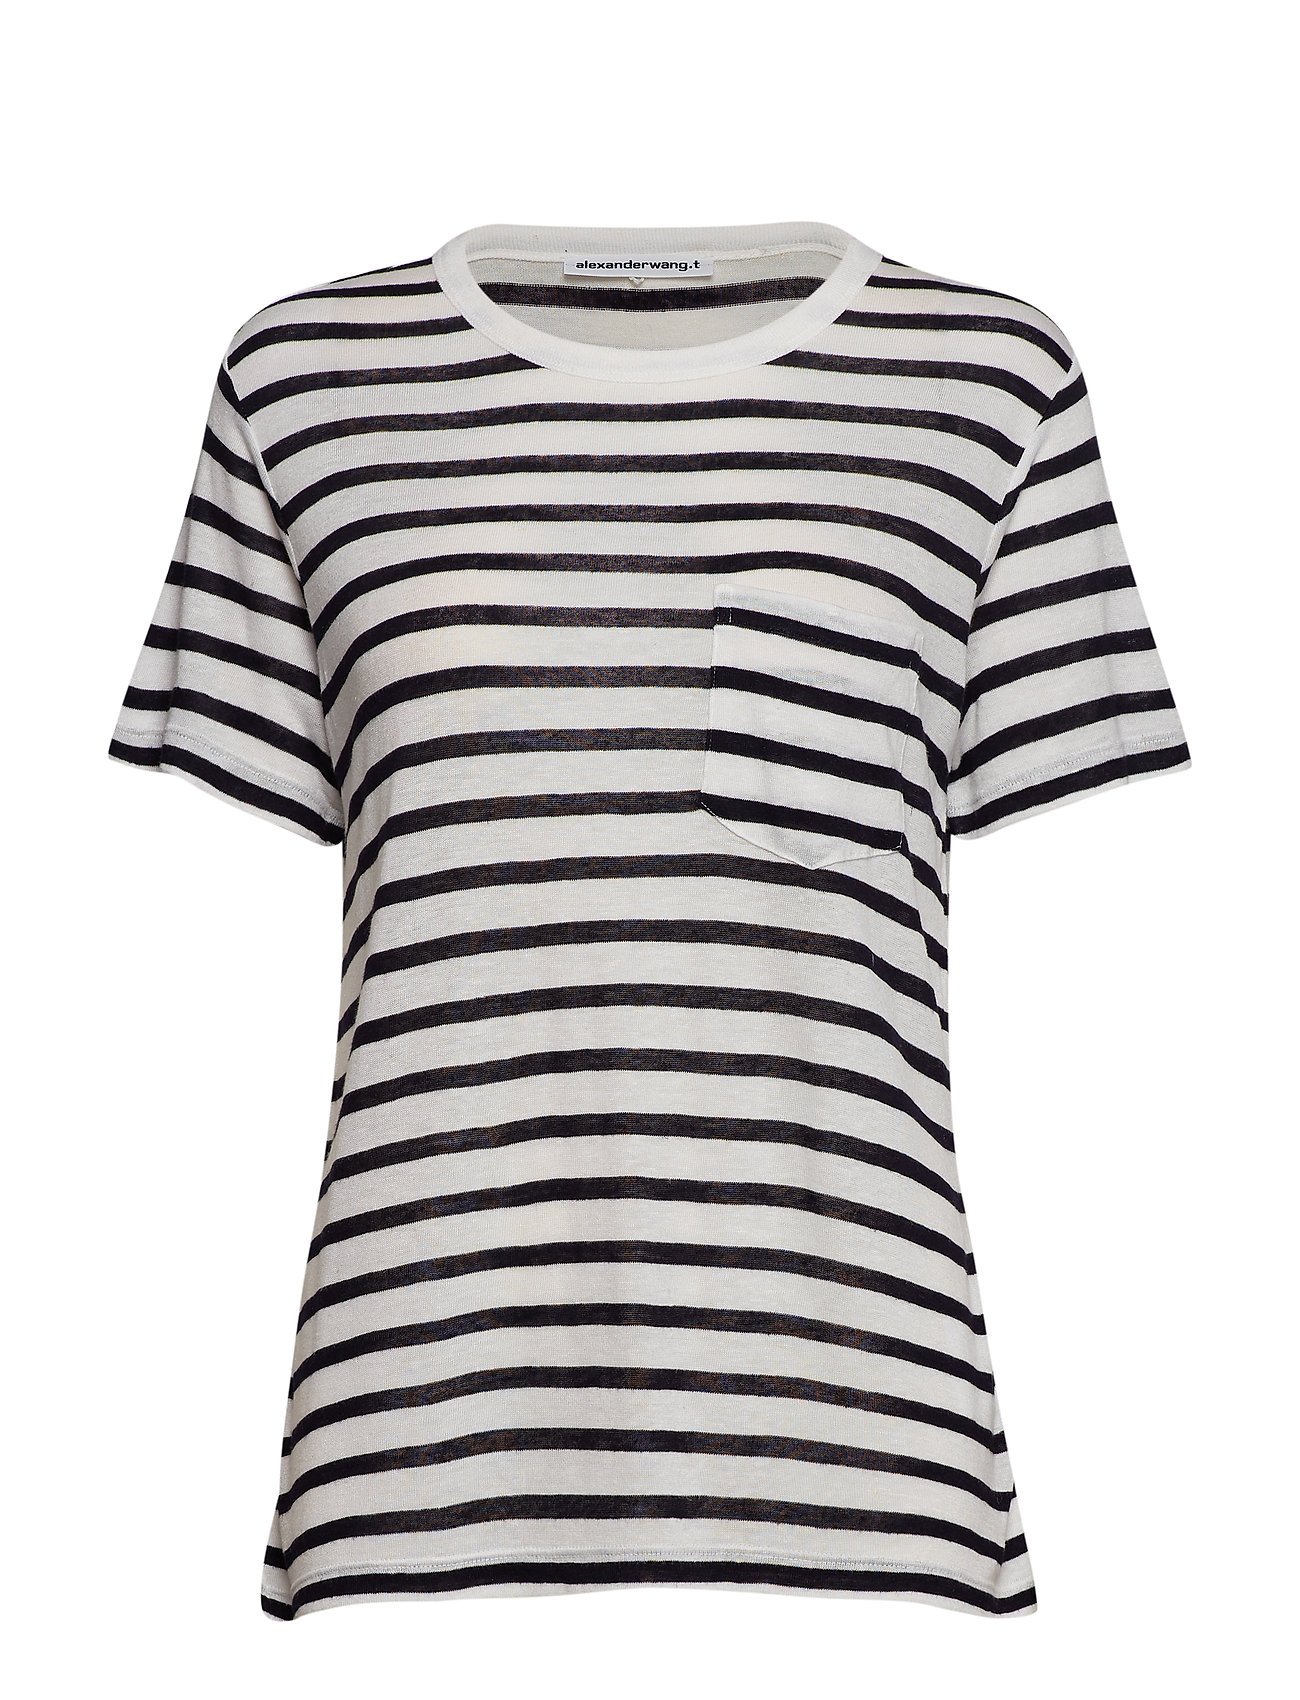 T by Alexander Wang CLASSIC STRIPED SLUB JERSEY S/S TEE W/ POCKET - INK AND IVORY